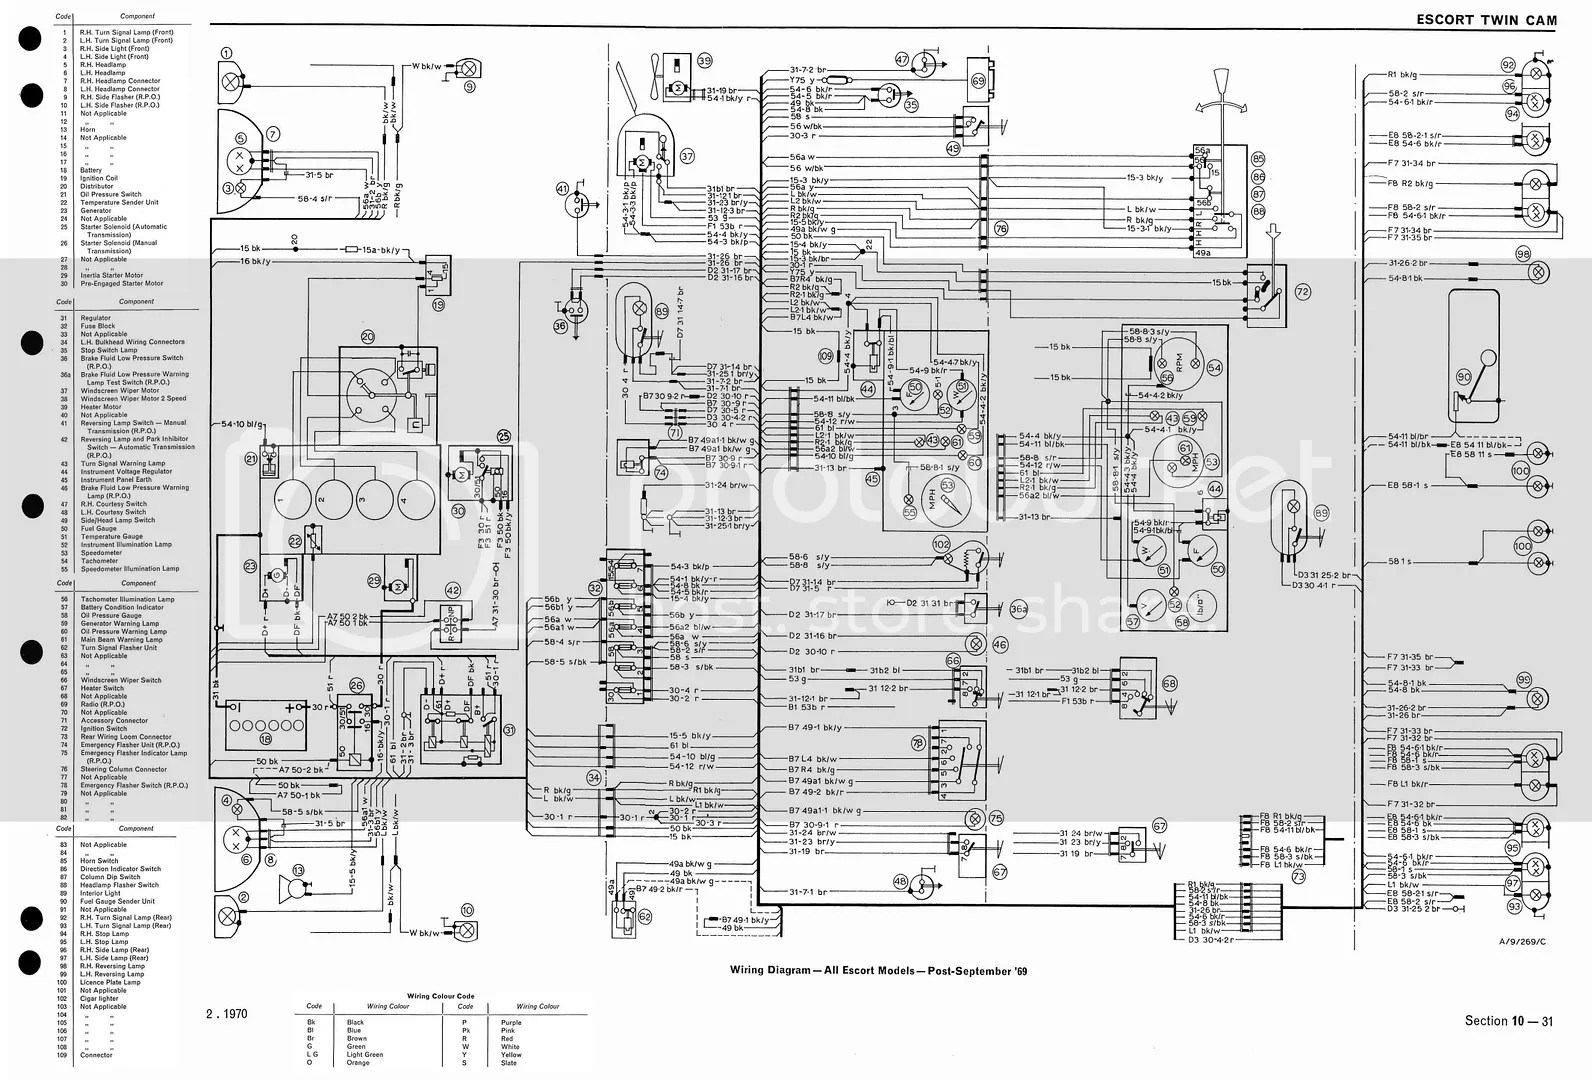 hight resolution of 2001 ford zx2 wiring diagram wiring diagram schematics ford focus radio wiring diagram 1997 ford escort